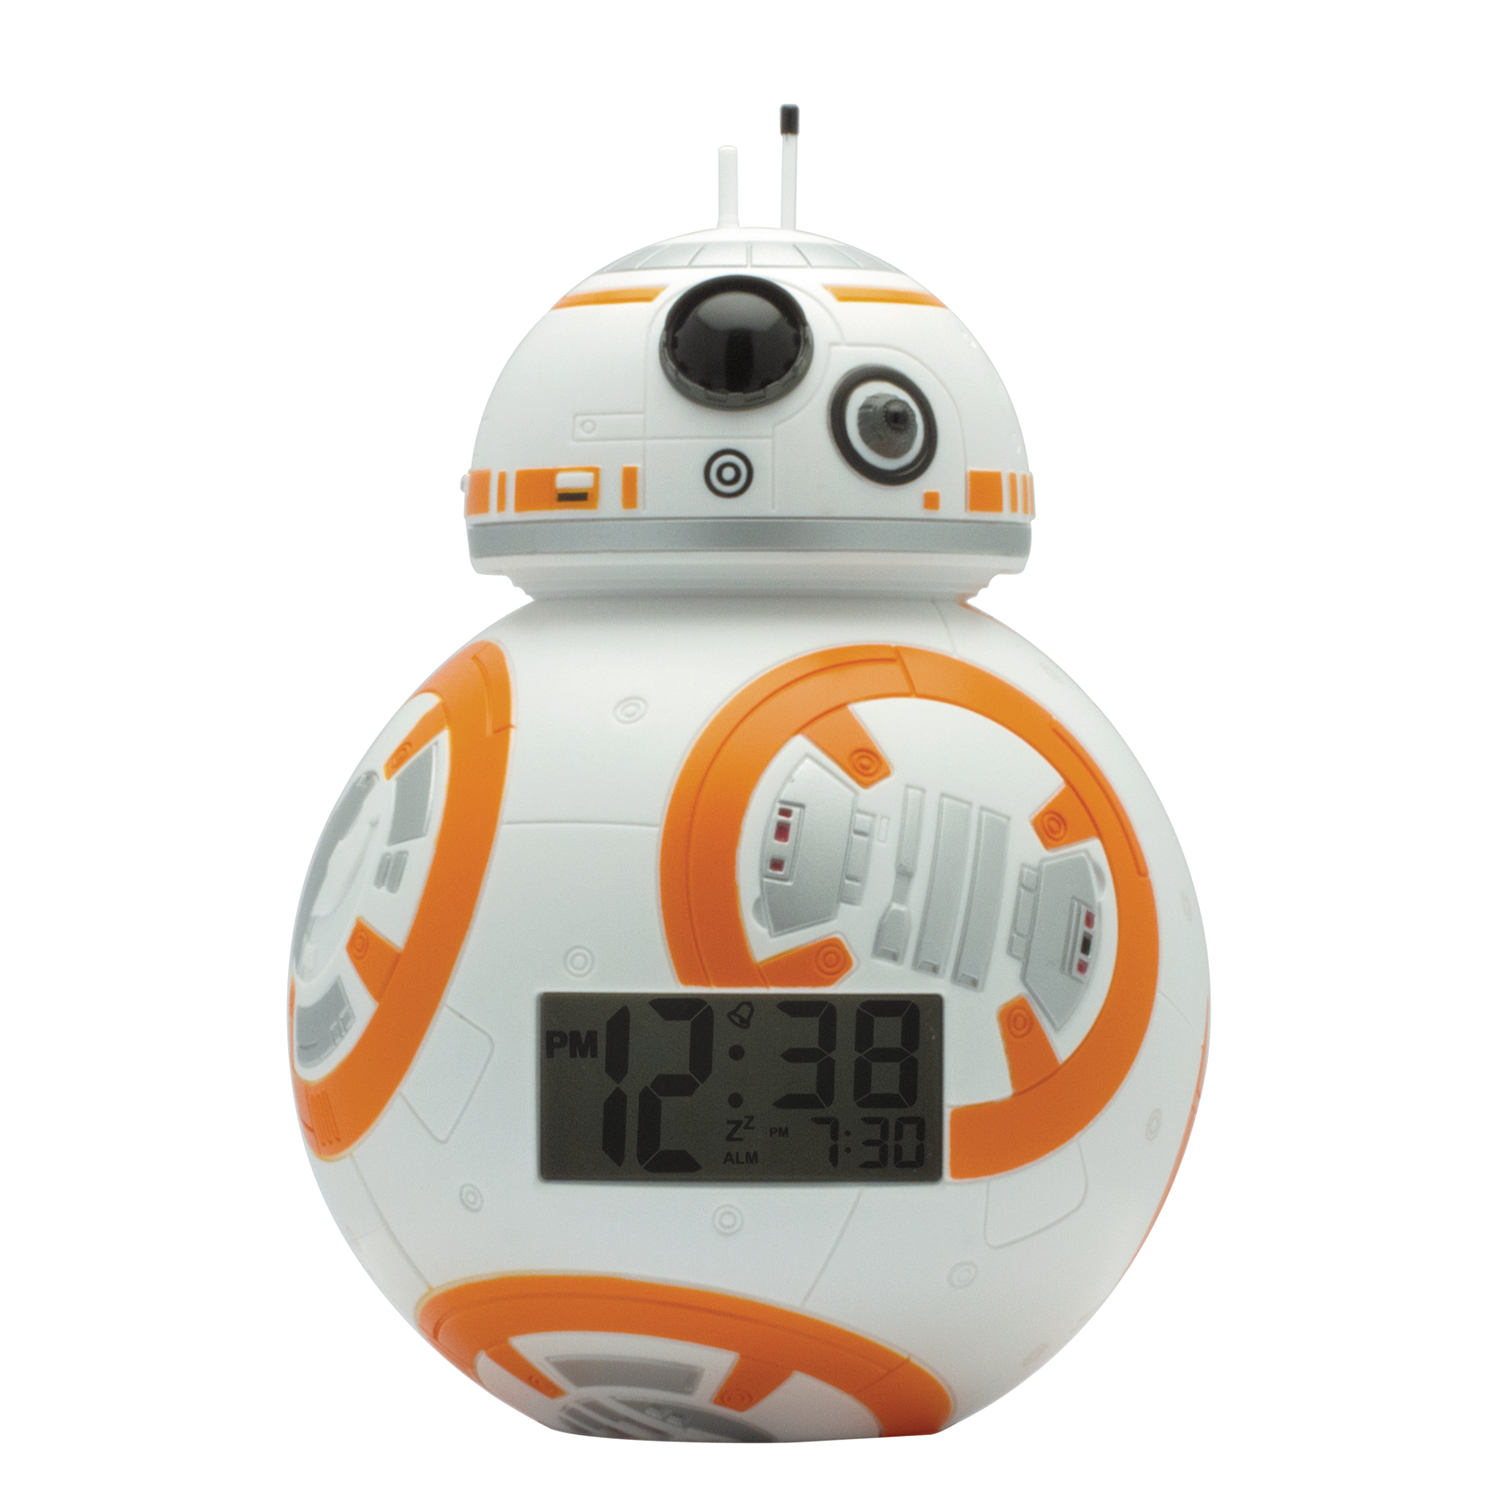 BULBBOTZ BB-8 ALARM CLOCK